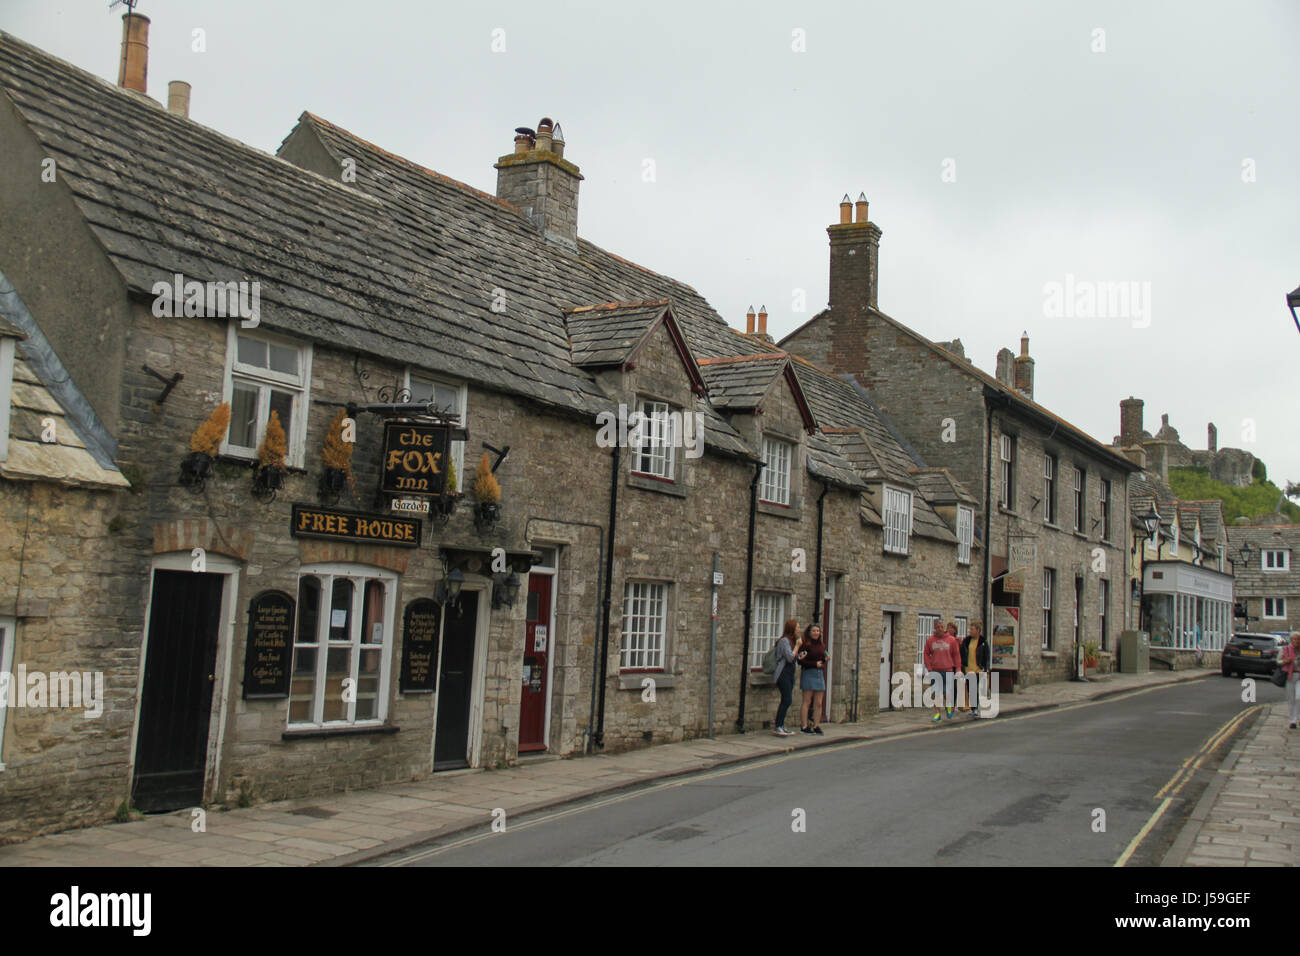 Swanage, UK -  12 May: The Fox Inn on West Street in the Corfe Castle village. The building is constructed using - Stock Image